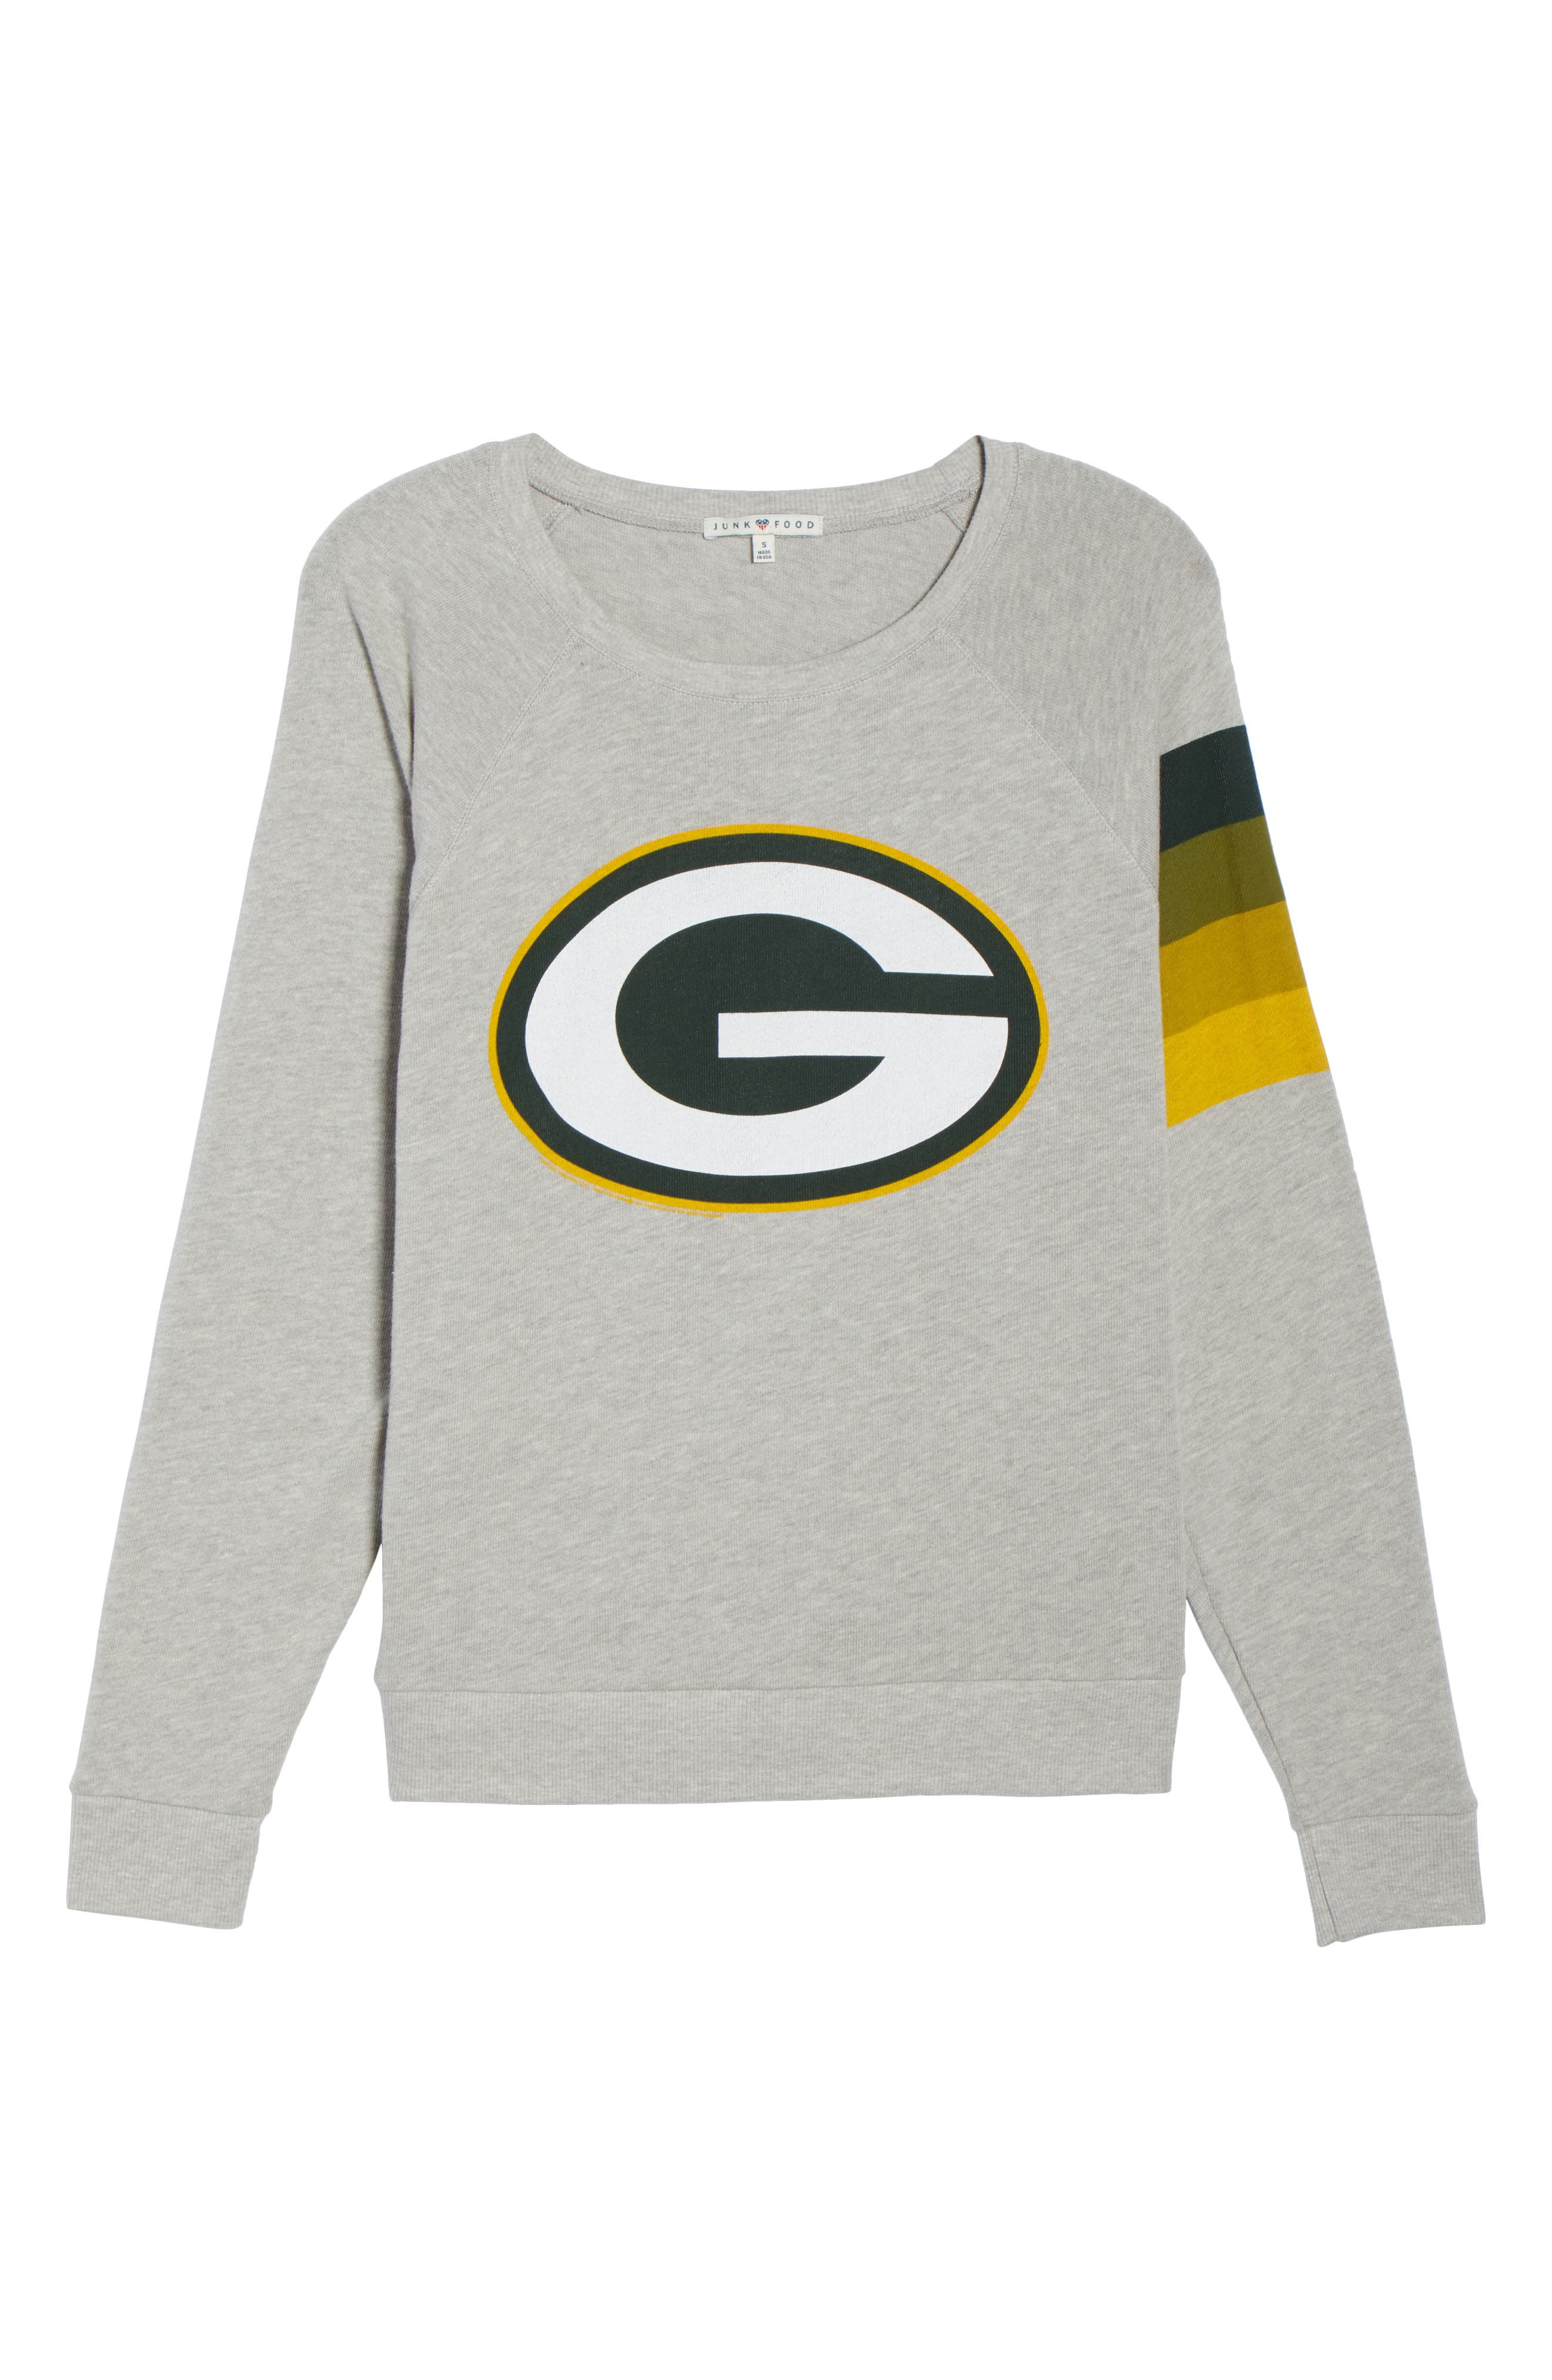 NF Green Bay Packers Hacci Sweatshirt,                             Alternate thumbnail 7, color,                             Dove Heather Grey